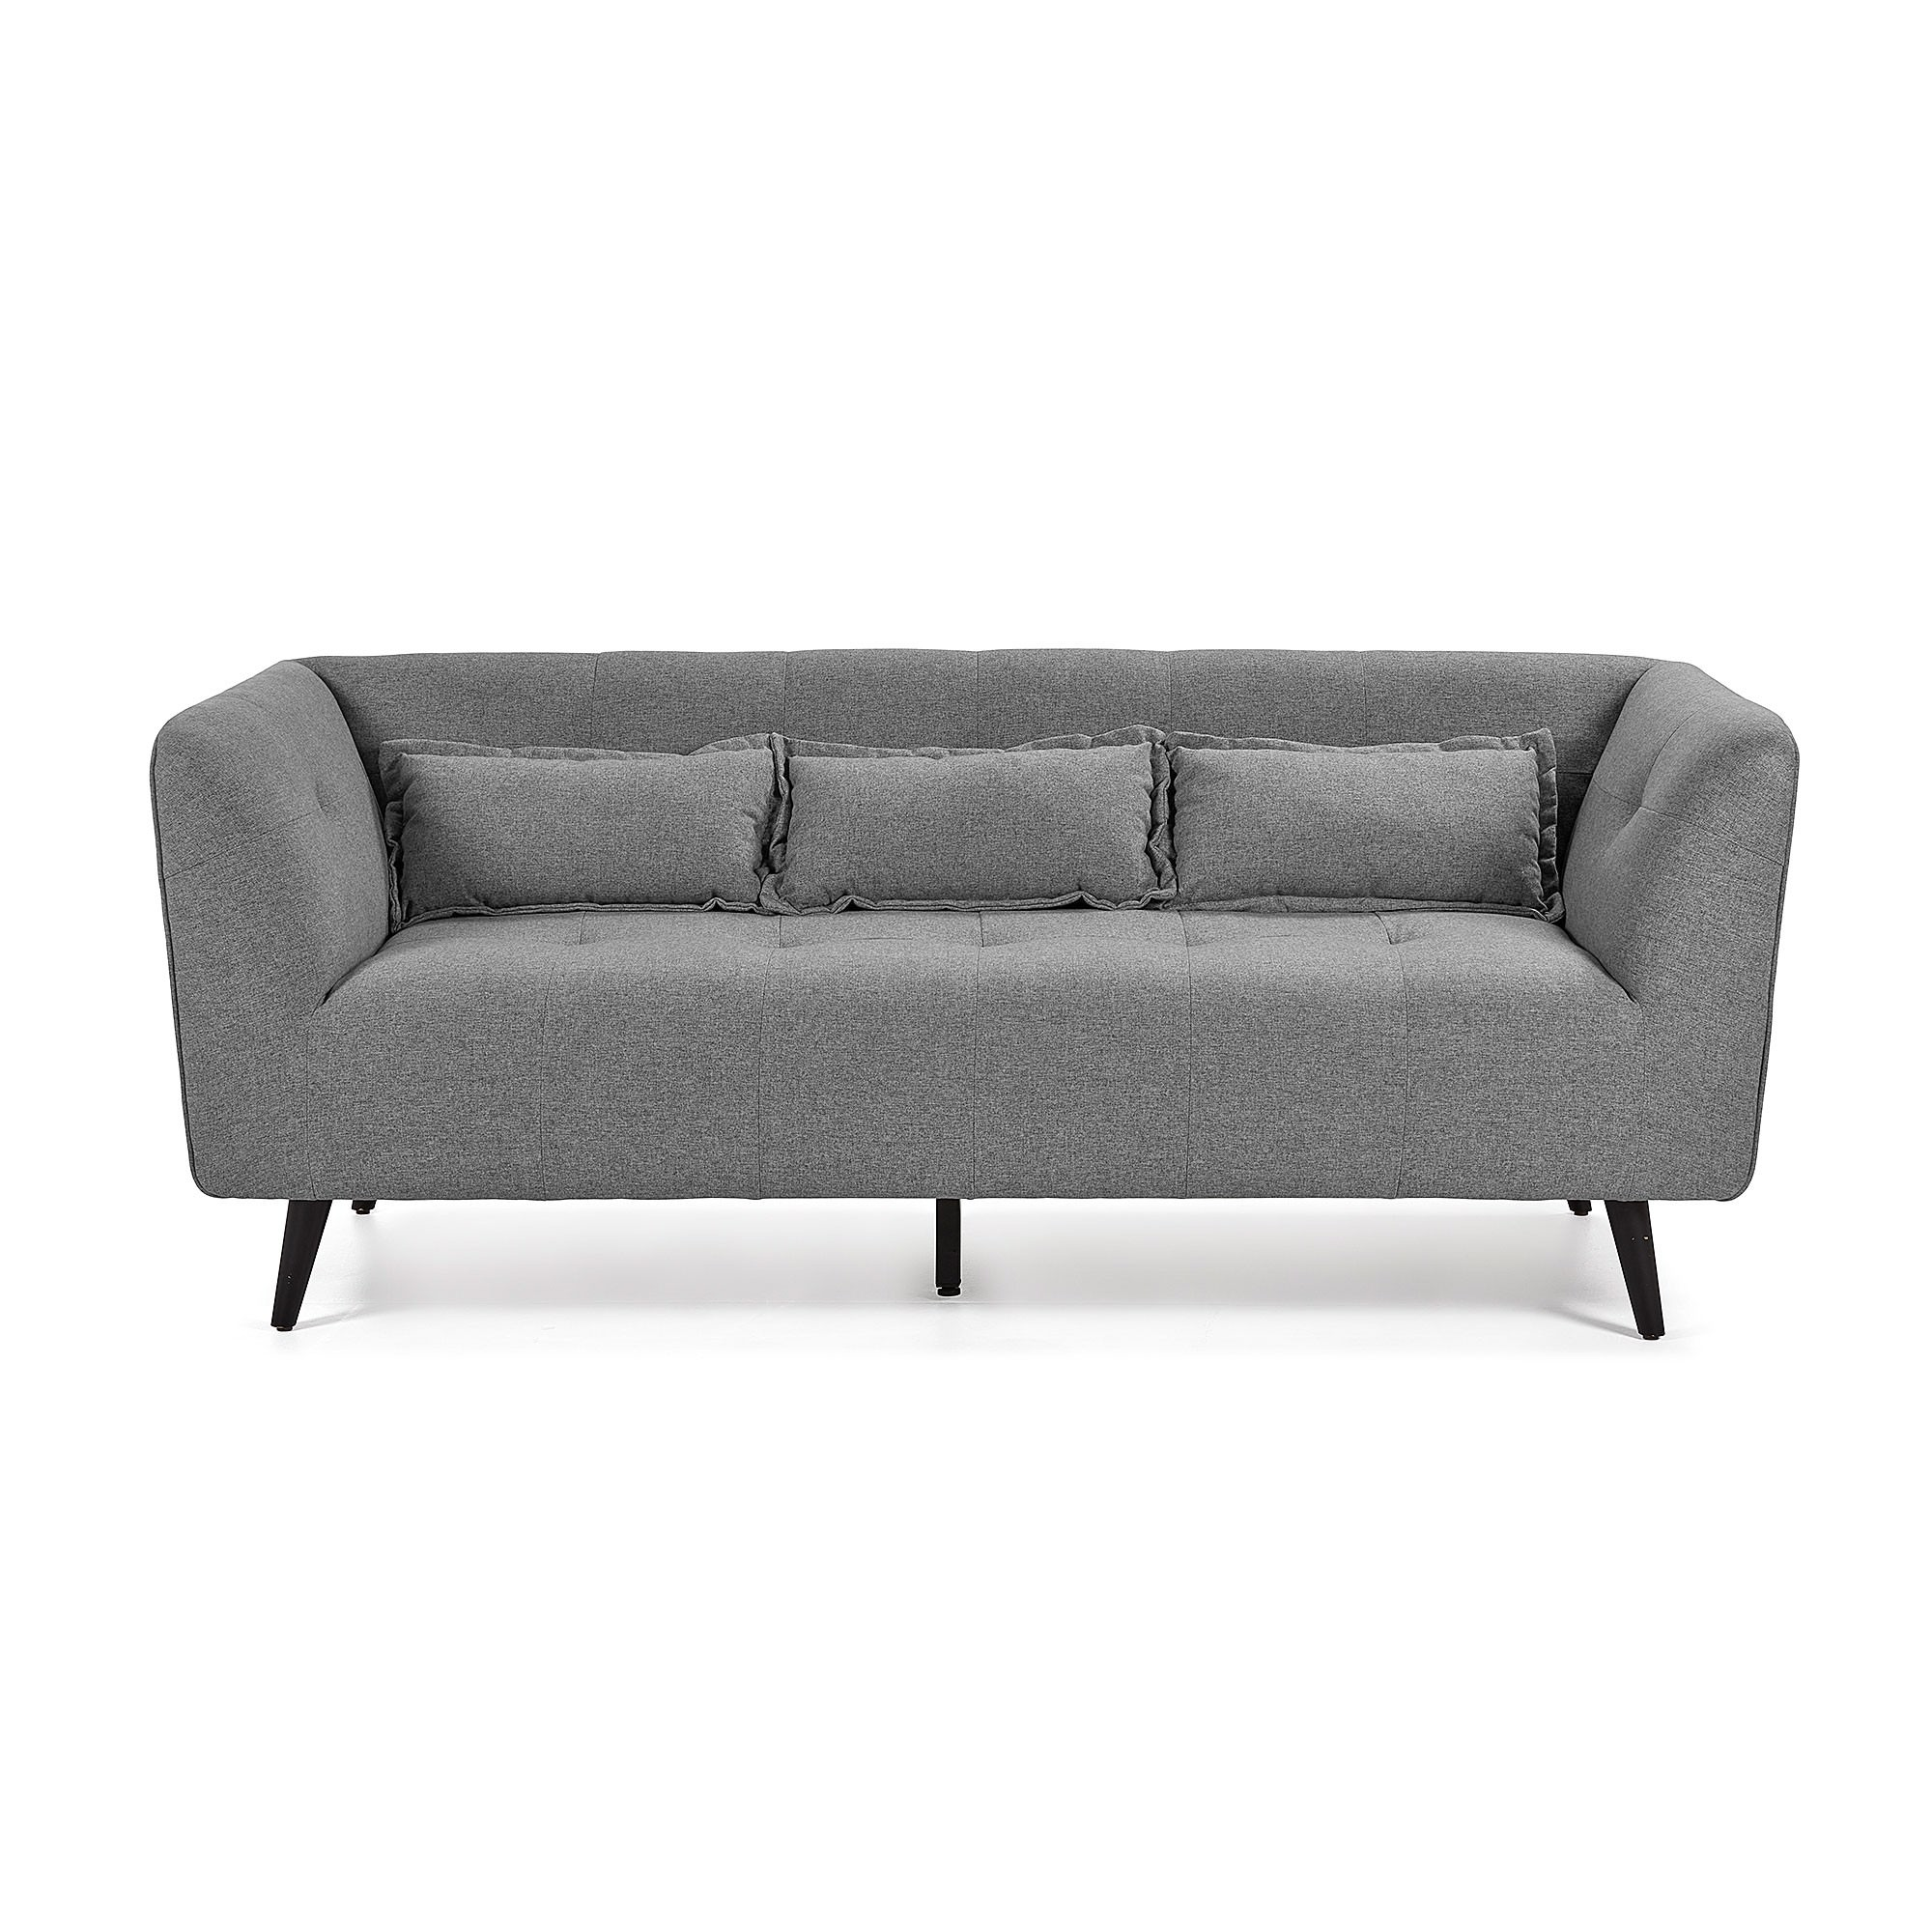 Anwen Fabric Sofa, 3 Seater, Dark Grey